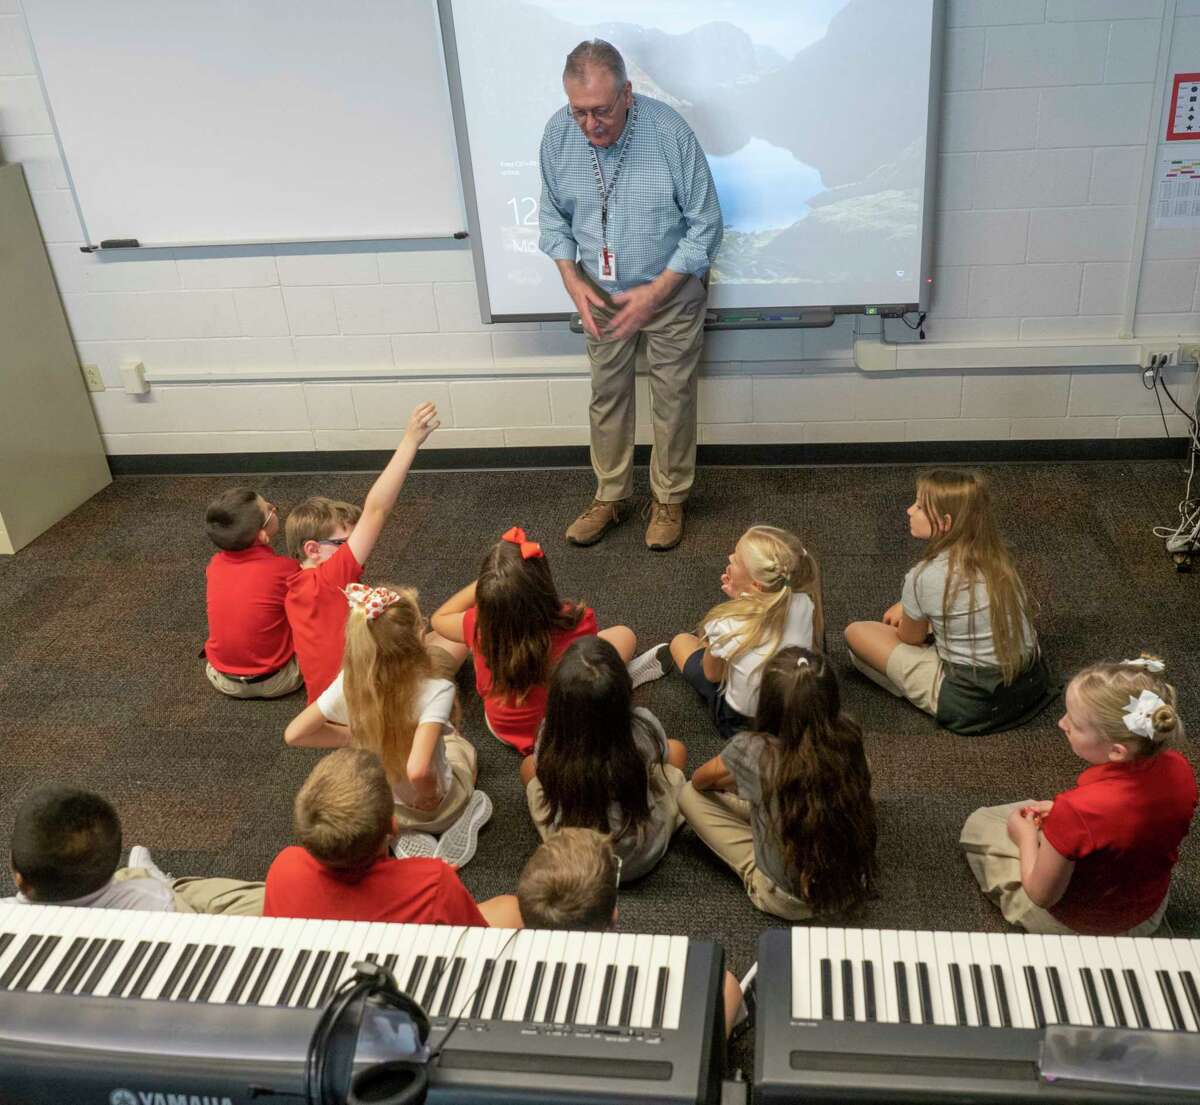 Piano instructor Randy Stevens talks with students 08/02/2021 at Bowie Fine Arts Academy during the first day of school for the 2021-2022 school year. Tim Fischer/Reporter-Telegram